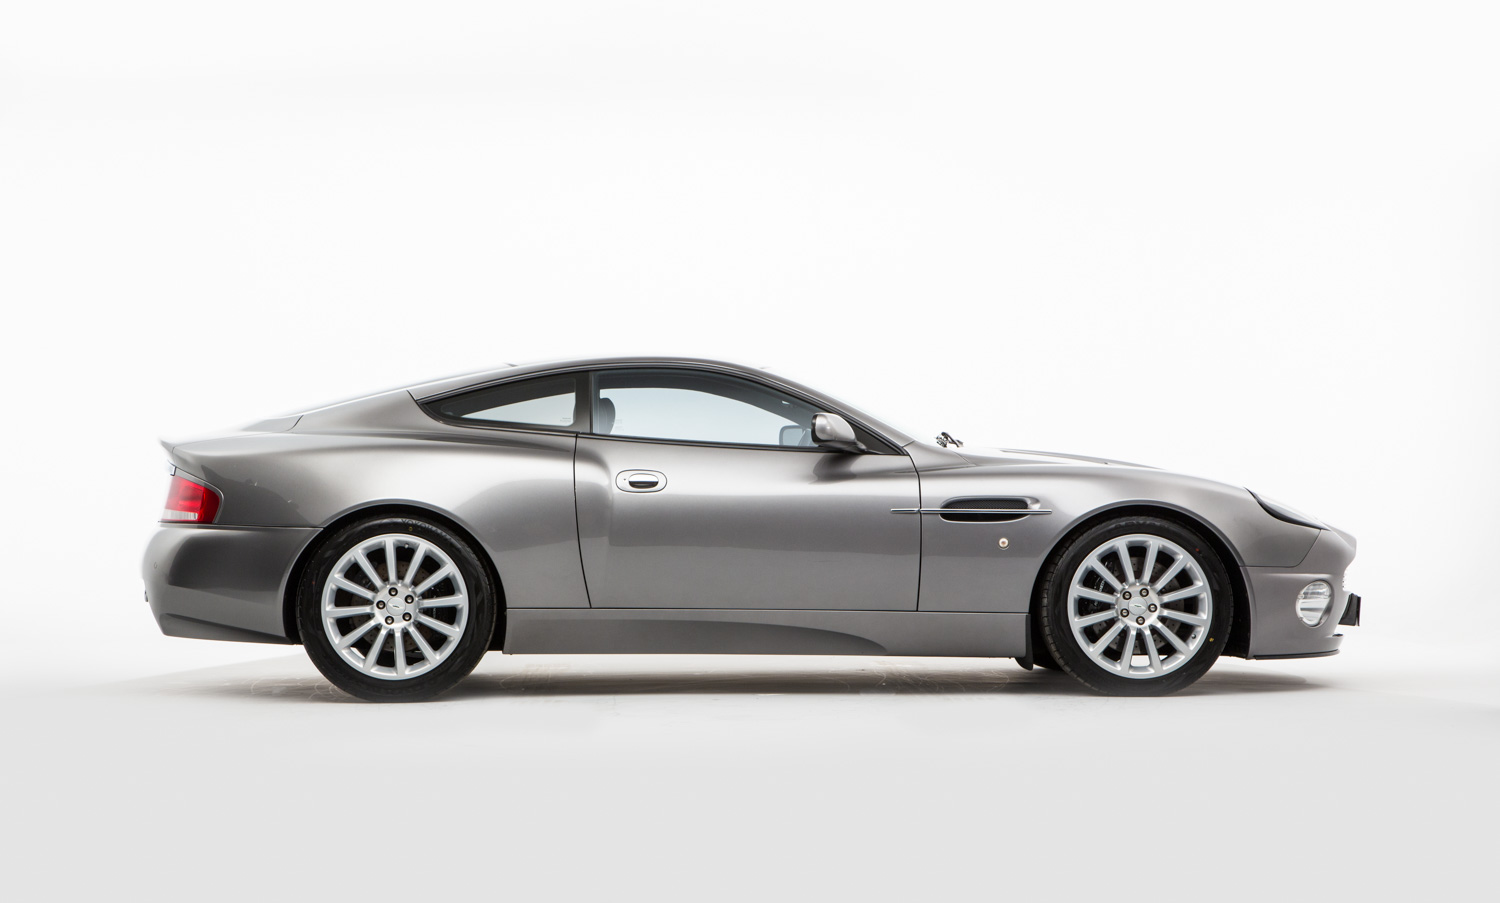 Aston Martin Vanquish For Sale - Exterior 7